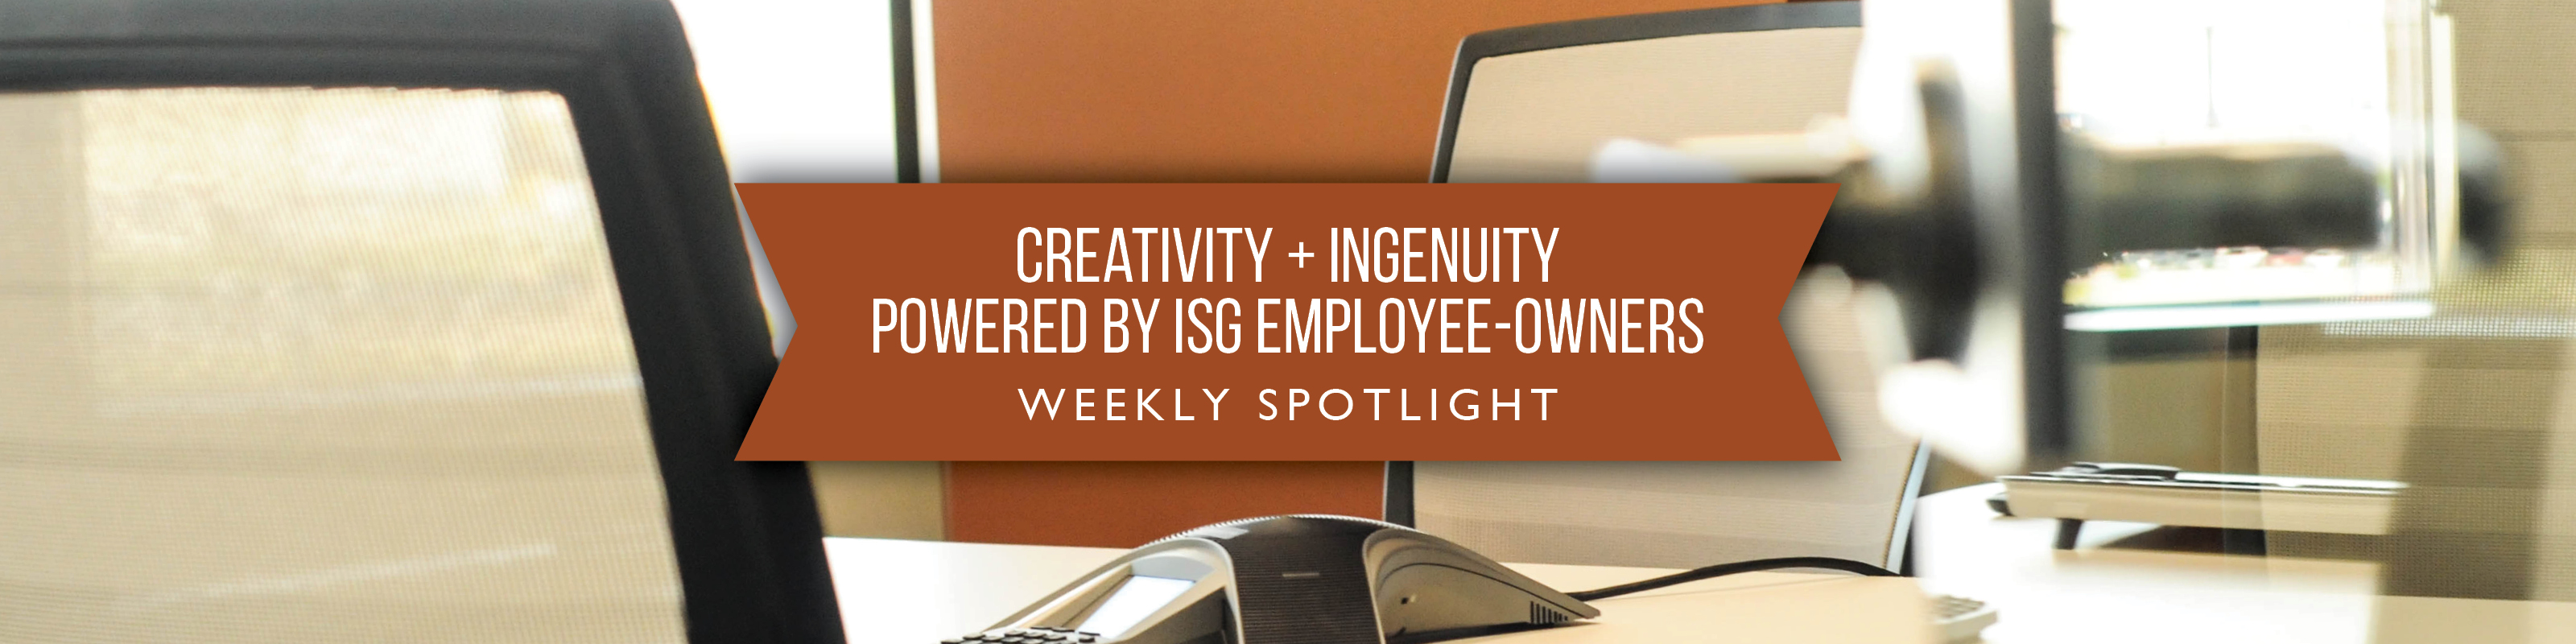 ISG Employee-Owner Spotlight Graphic